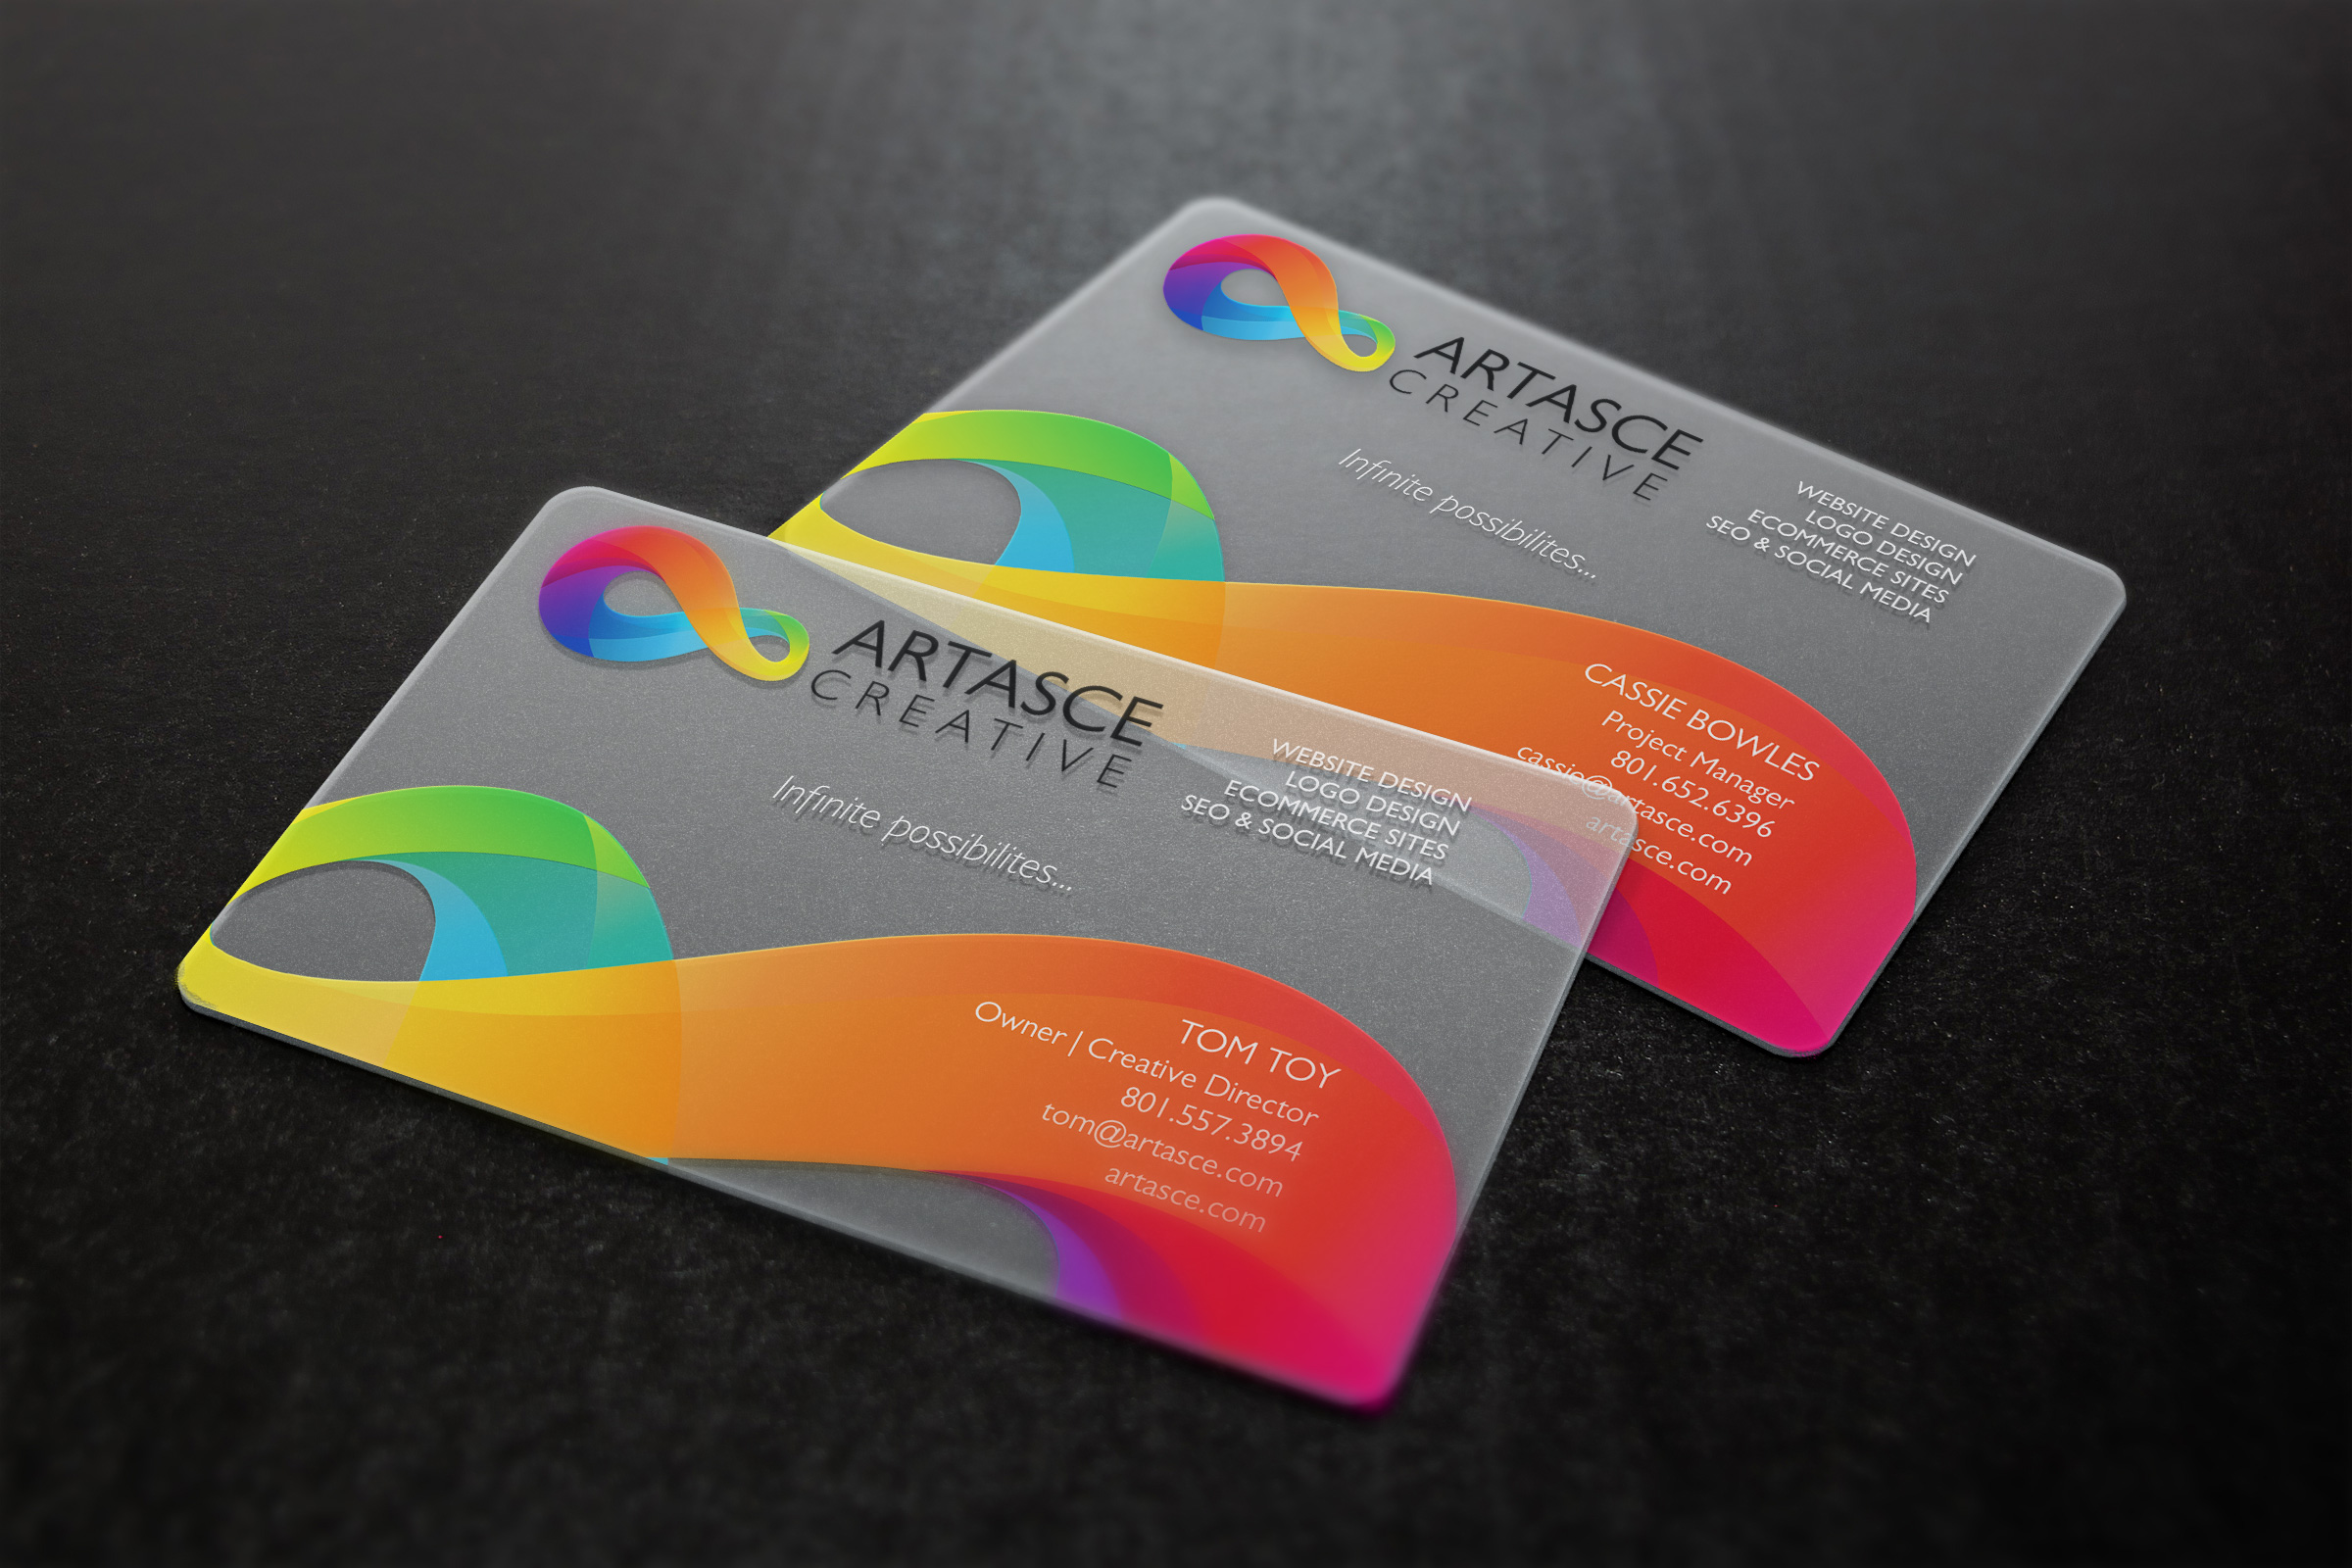 Clear Plastic Business Cards - Artasce Creative